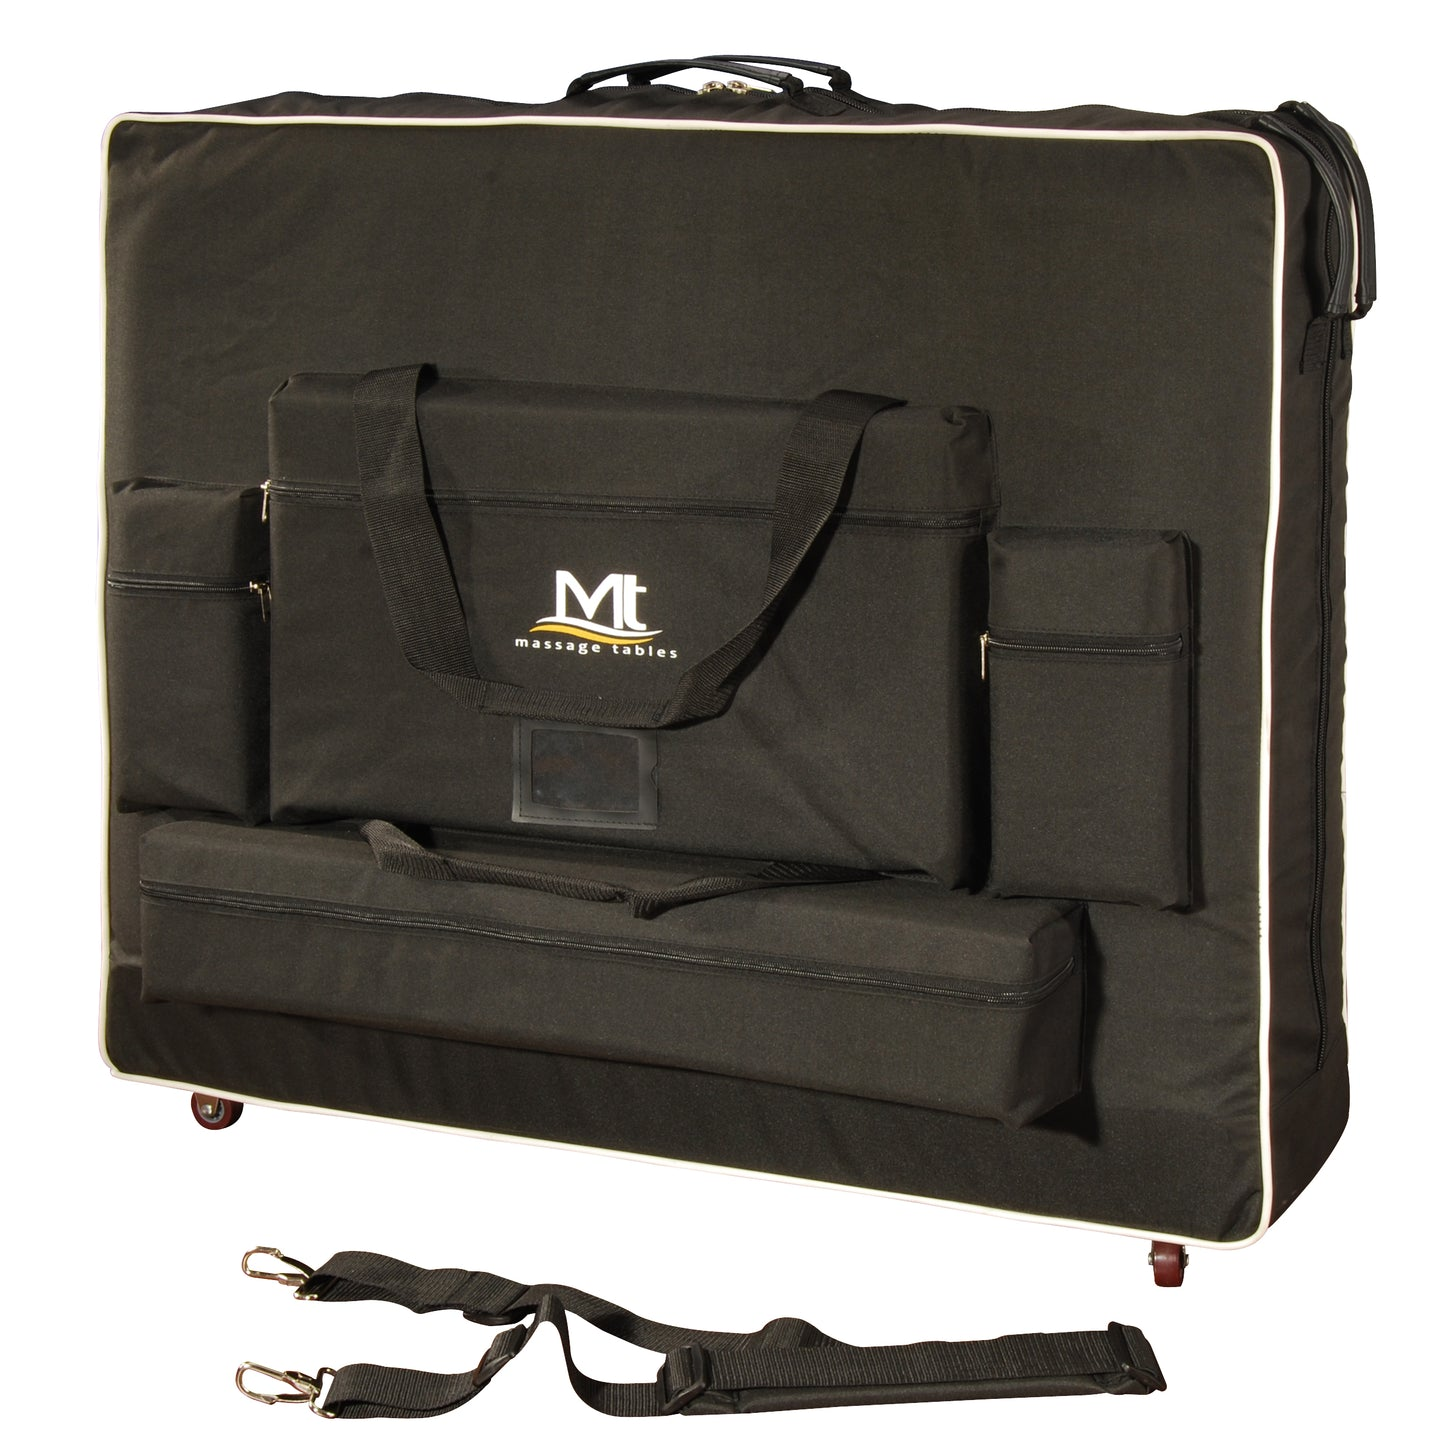 MT Massage - Deluxe Carrying Case for Massage Table with Wheels - Superb Massage Tables